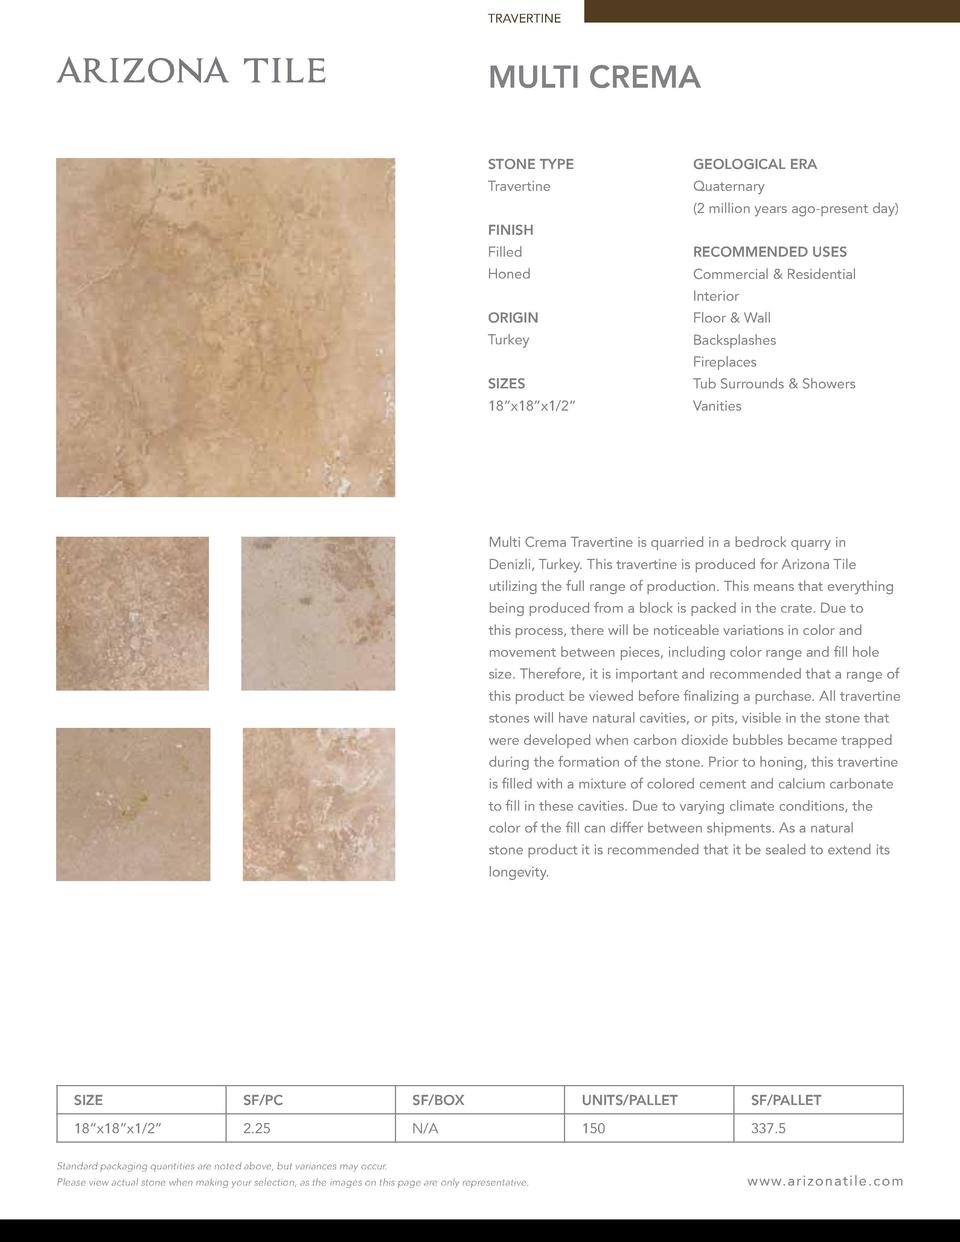 TRAVERTINE  MULTI CREMA STONE TYPE  GEOLOGICAL ERA  Travertine  Quaternary  2 million years ago-present day   FINISH Fille...